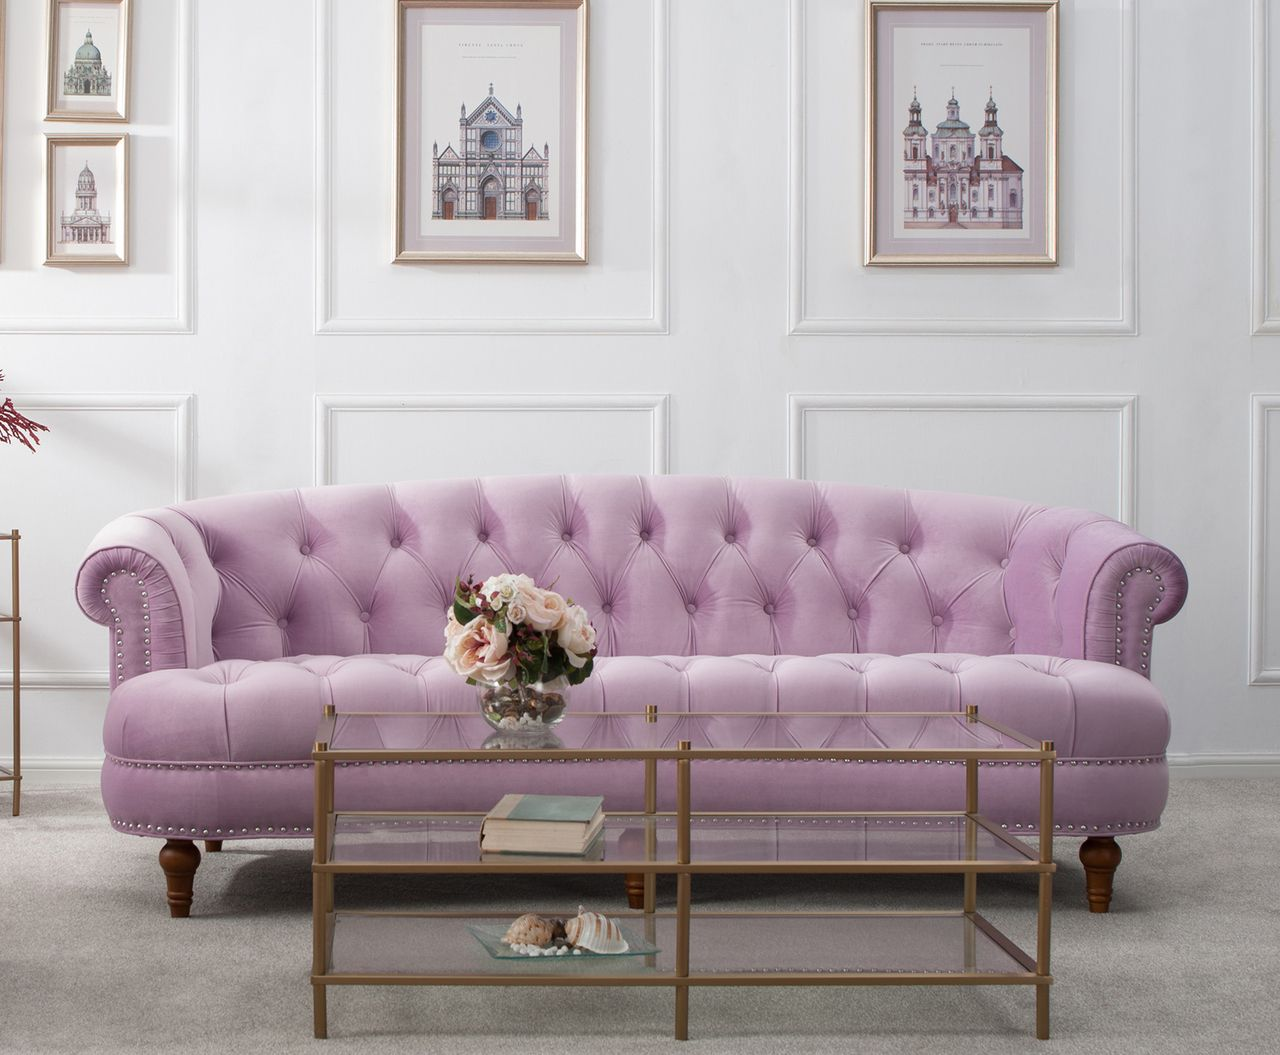 Sofa Outlet Paisley La Rosa Chesterfield Sofa Lavender In 2019 Sunset Sky